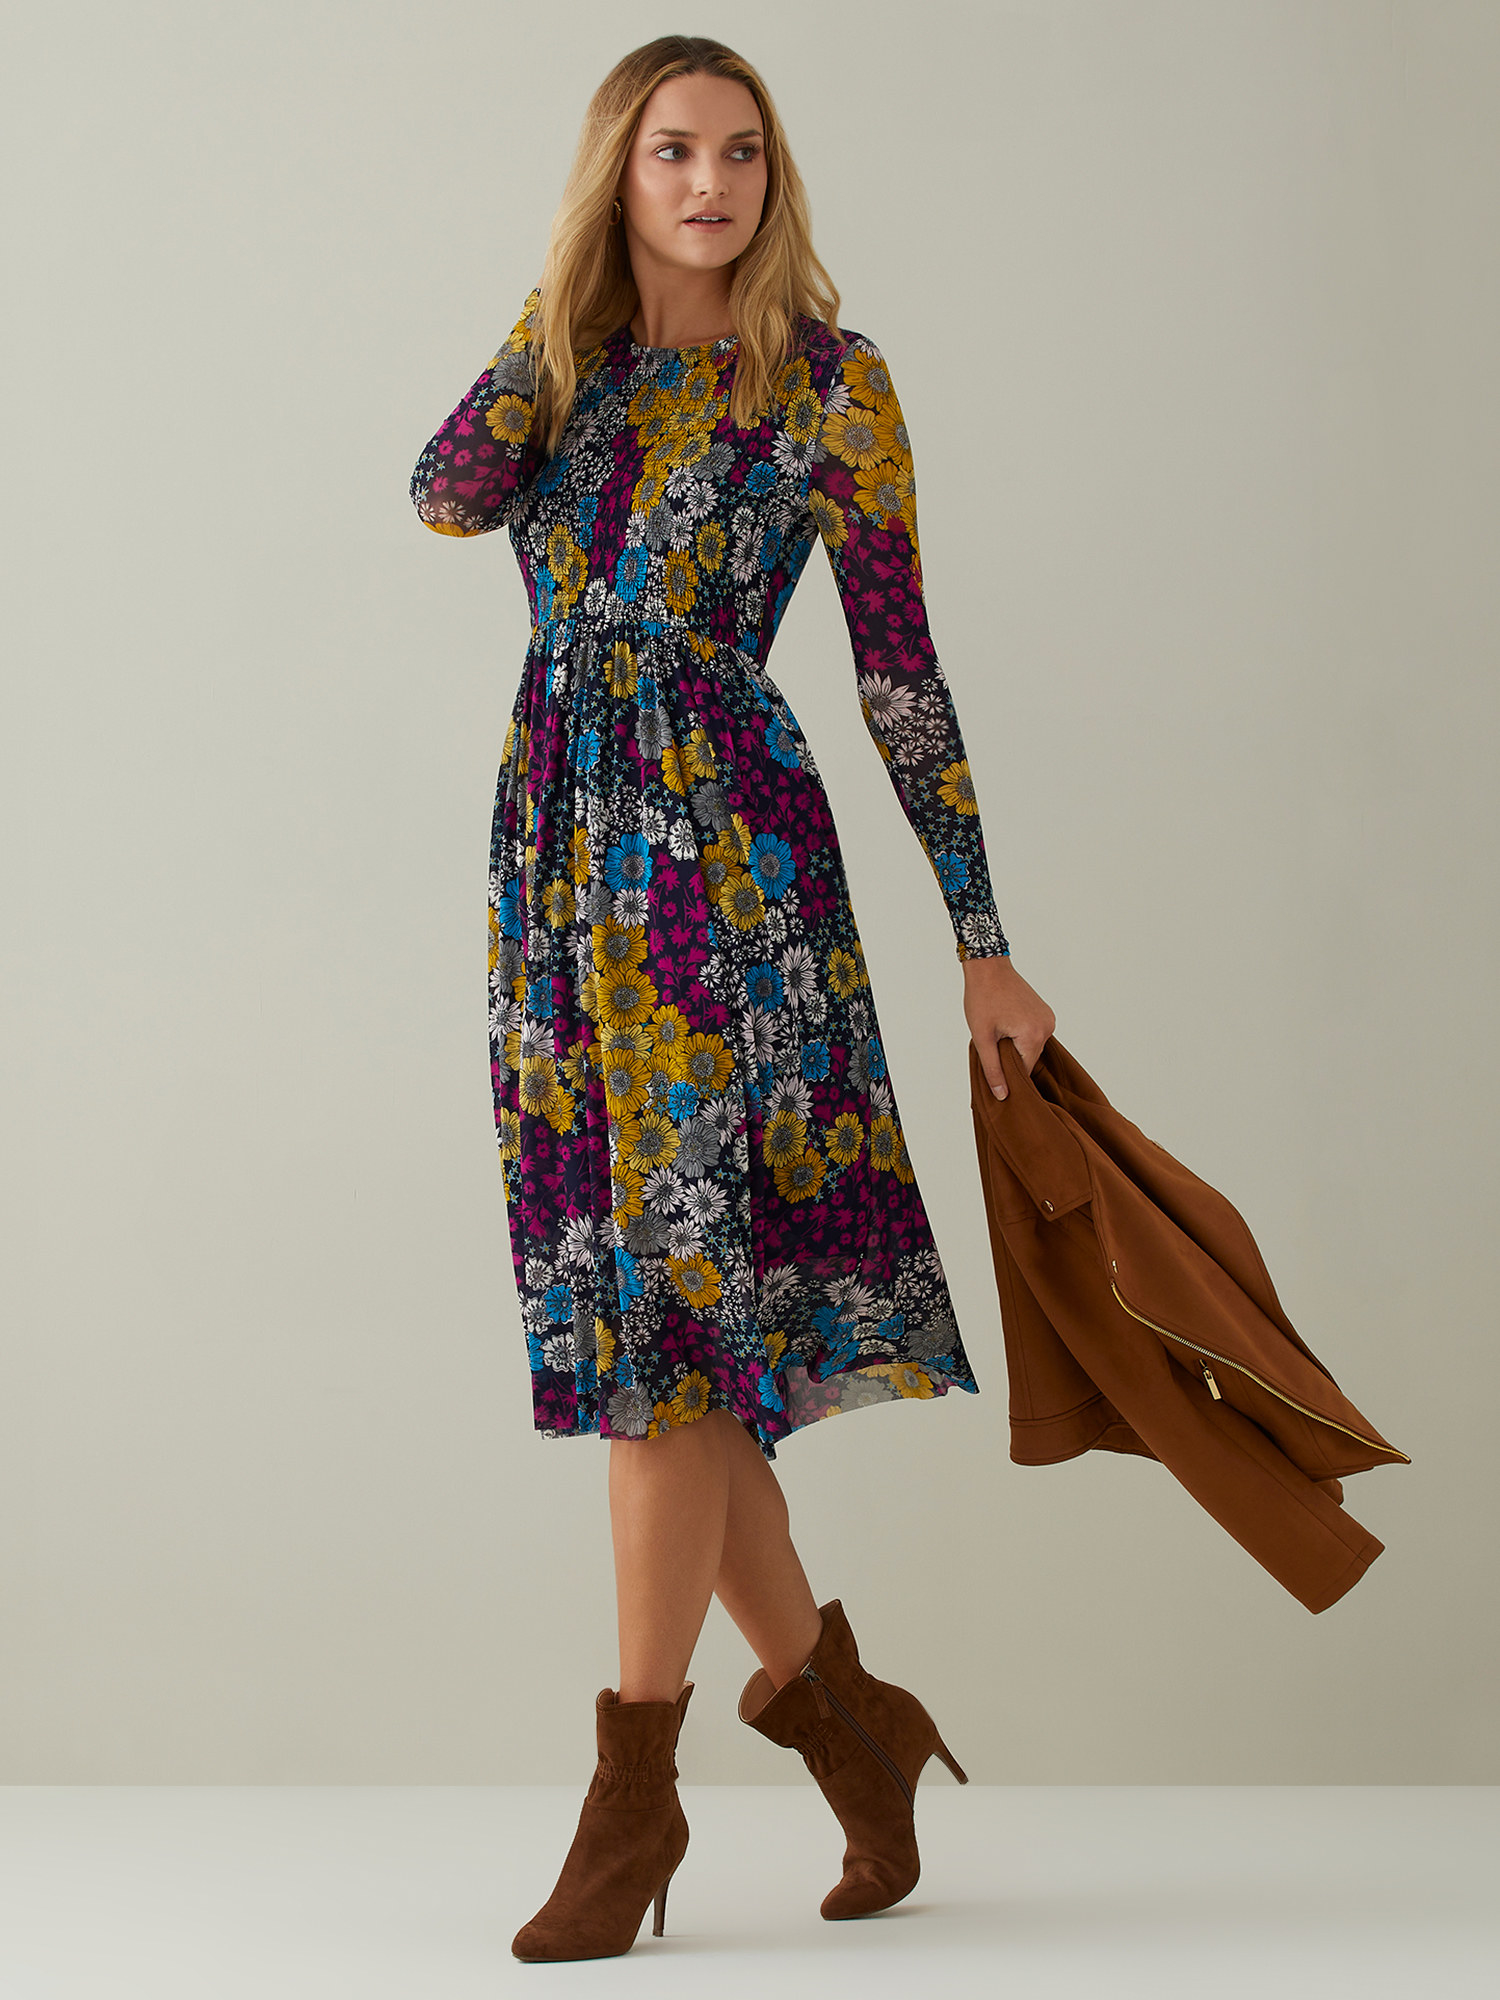 Model wears bright purple and blue floral dress